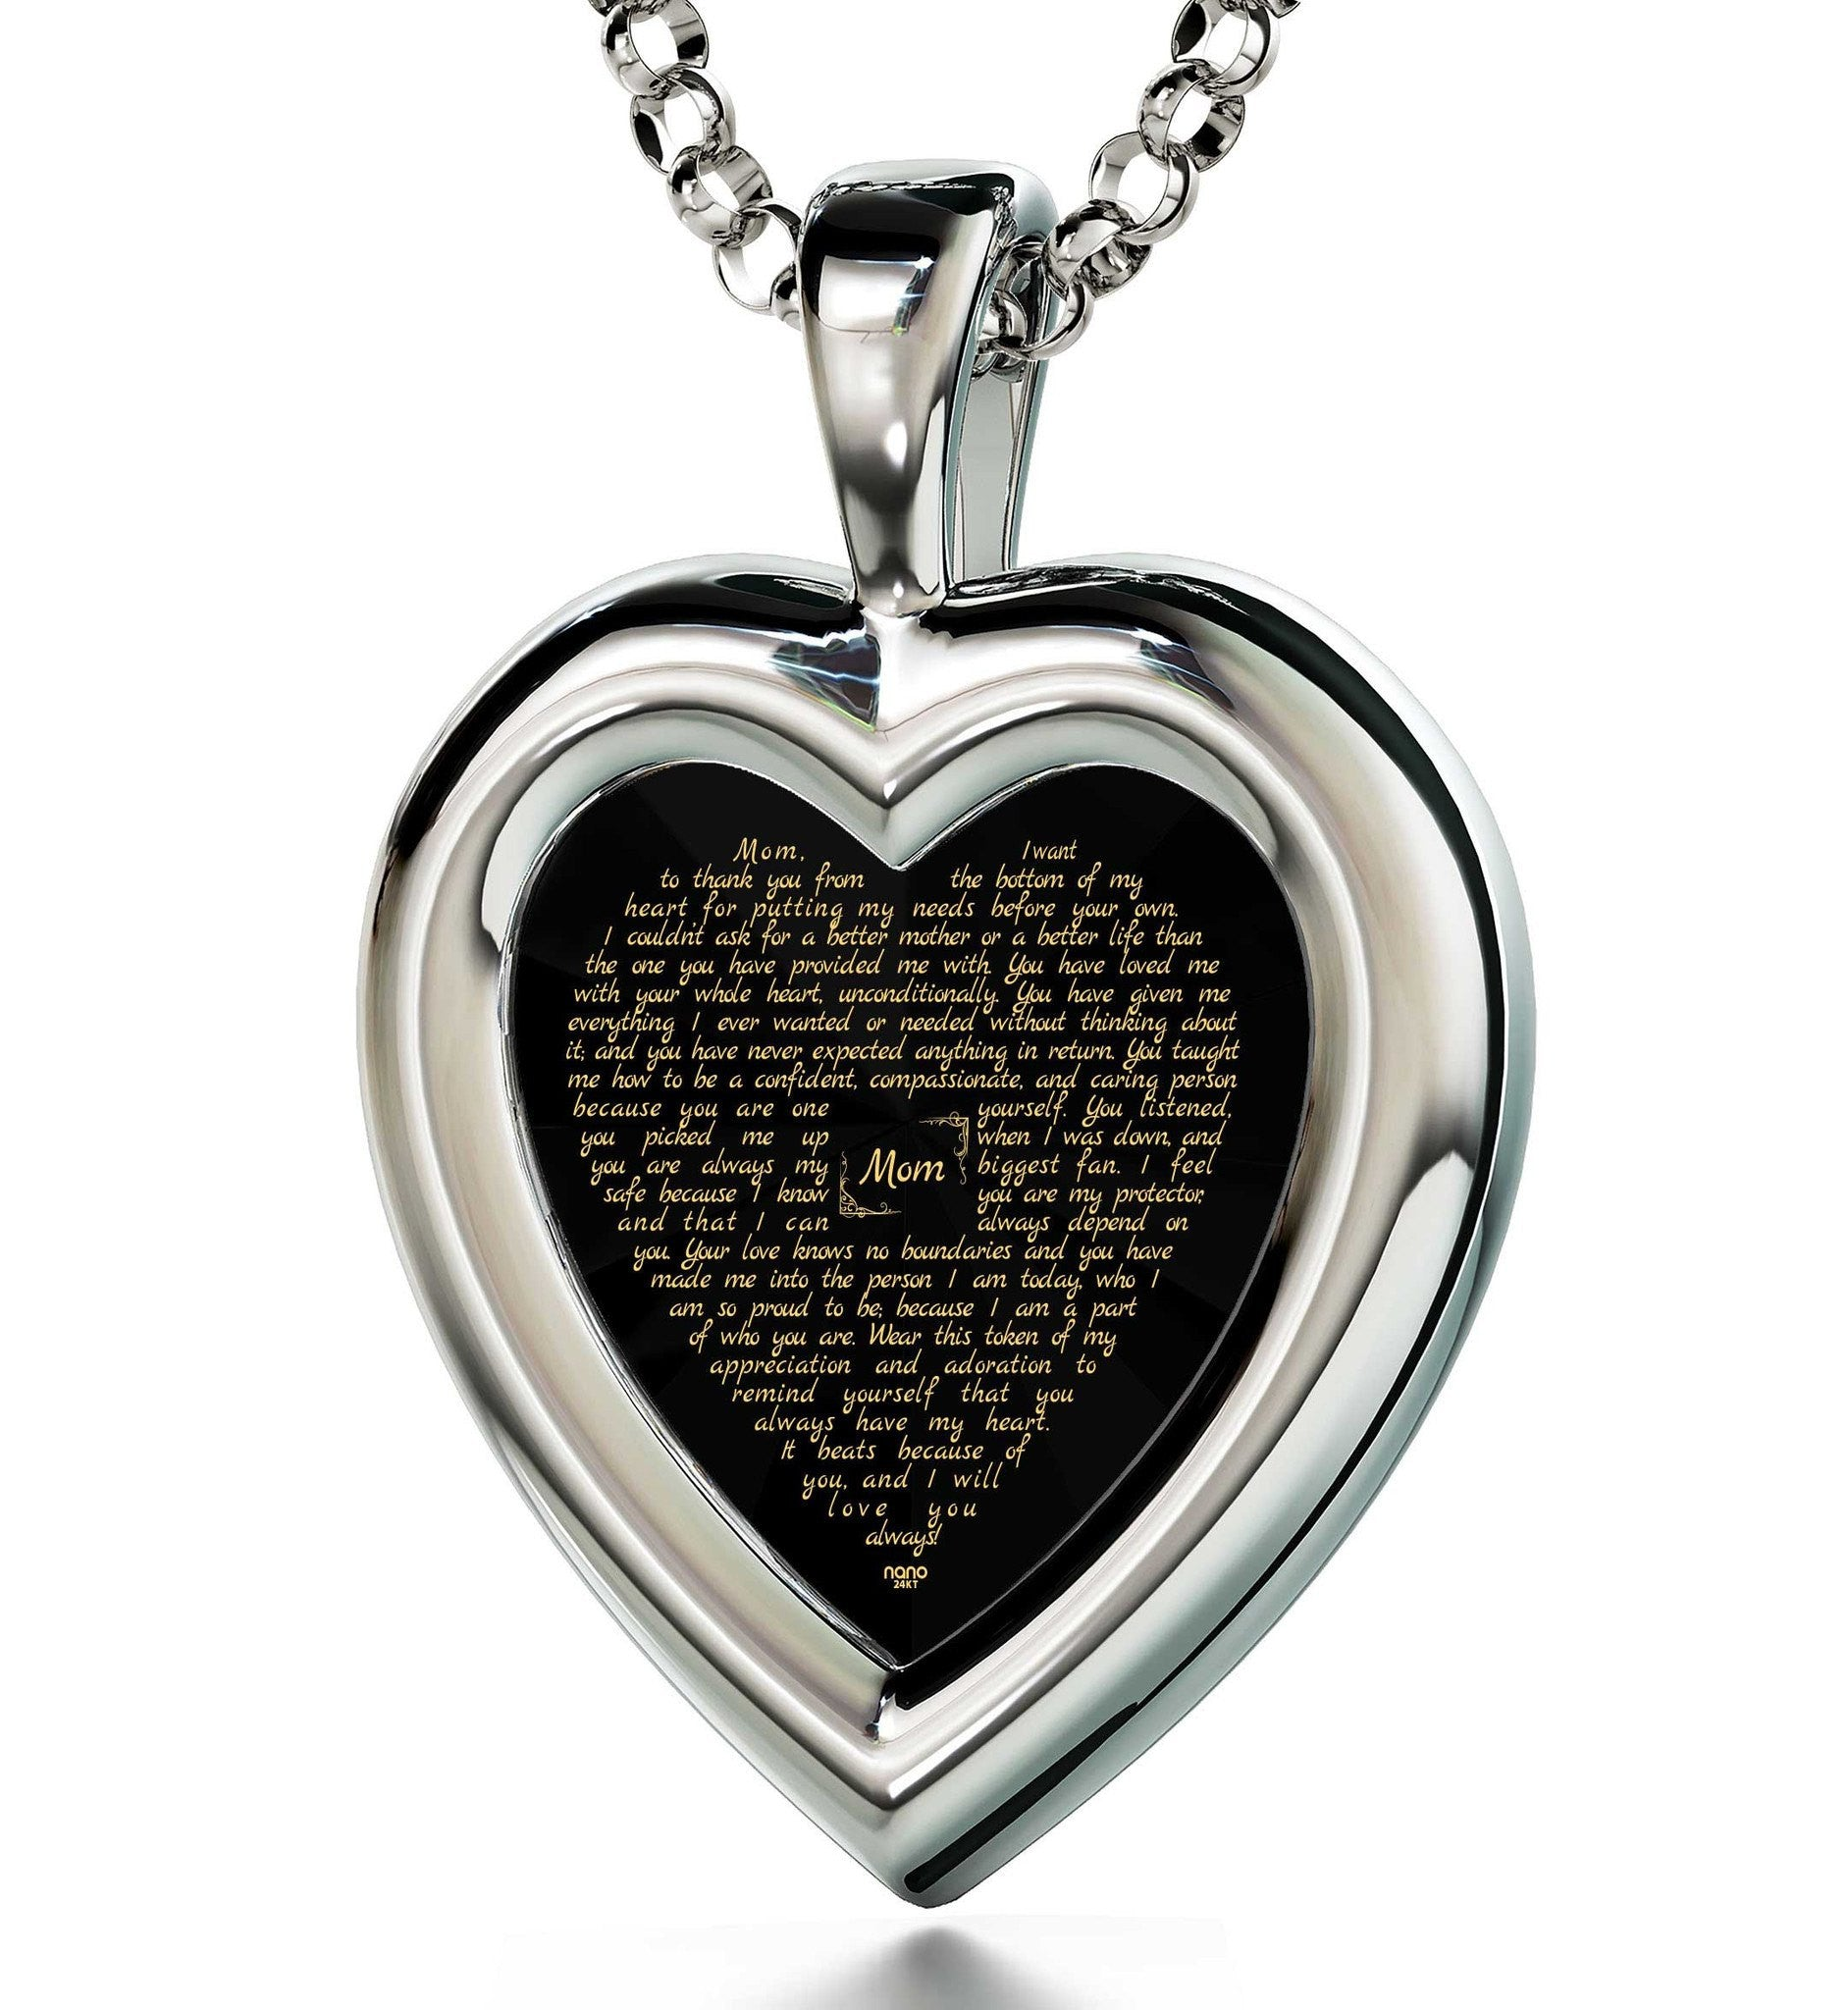 Christmas Presents Mom: Sterling Silver Necklace with Pendant, CZ Black Heart, Special Mother's Day Gifts